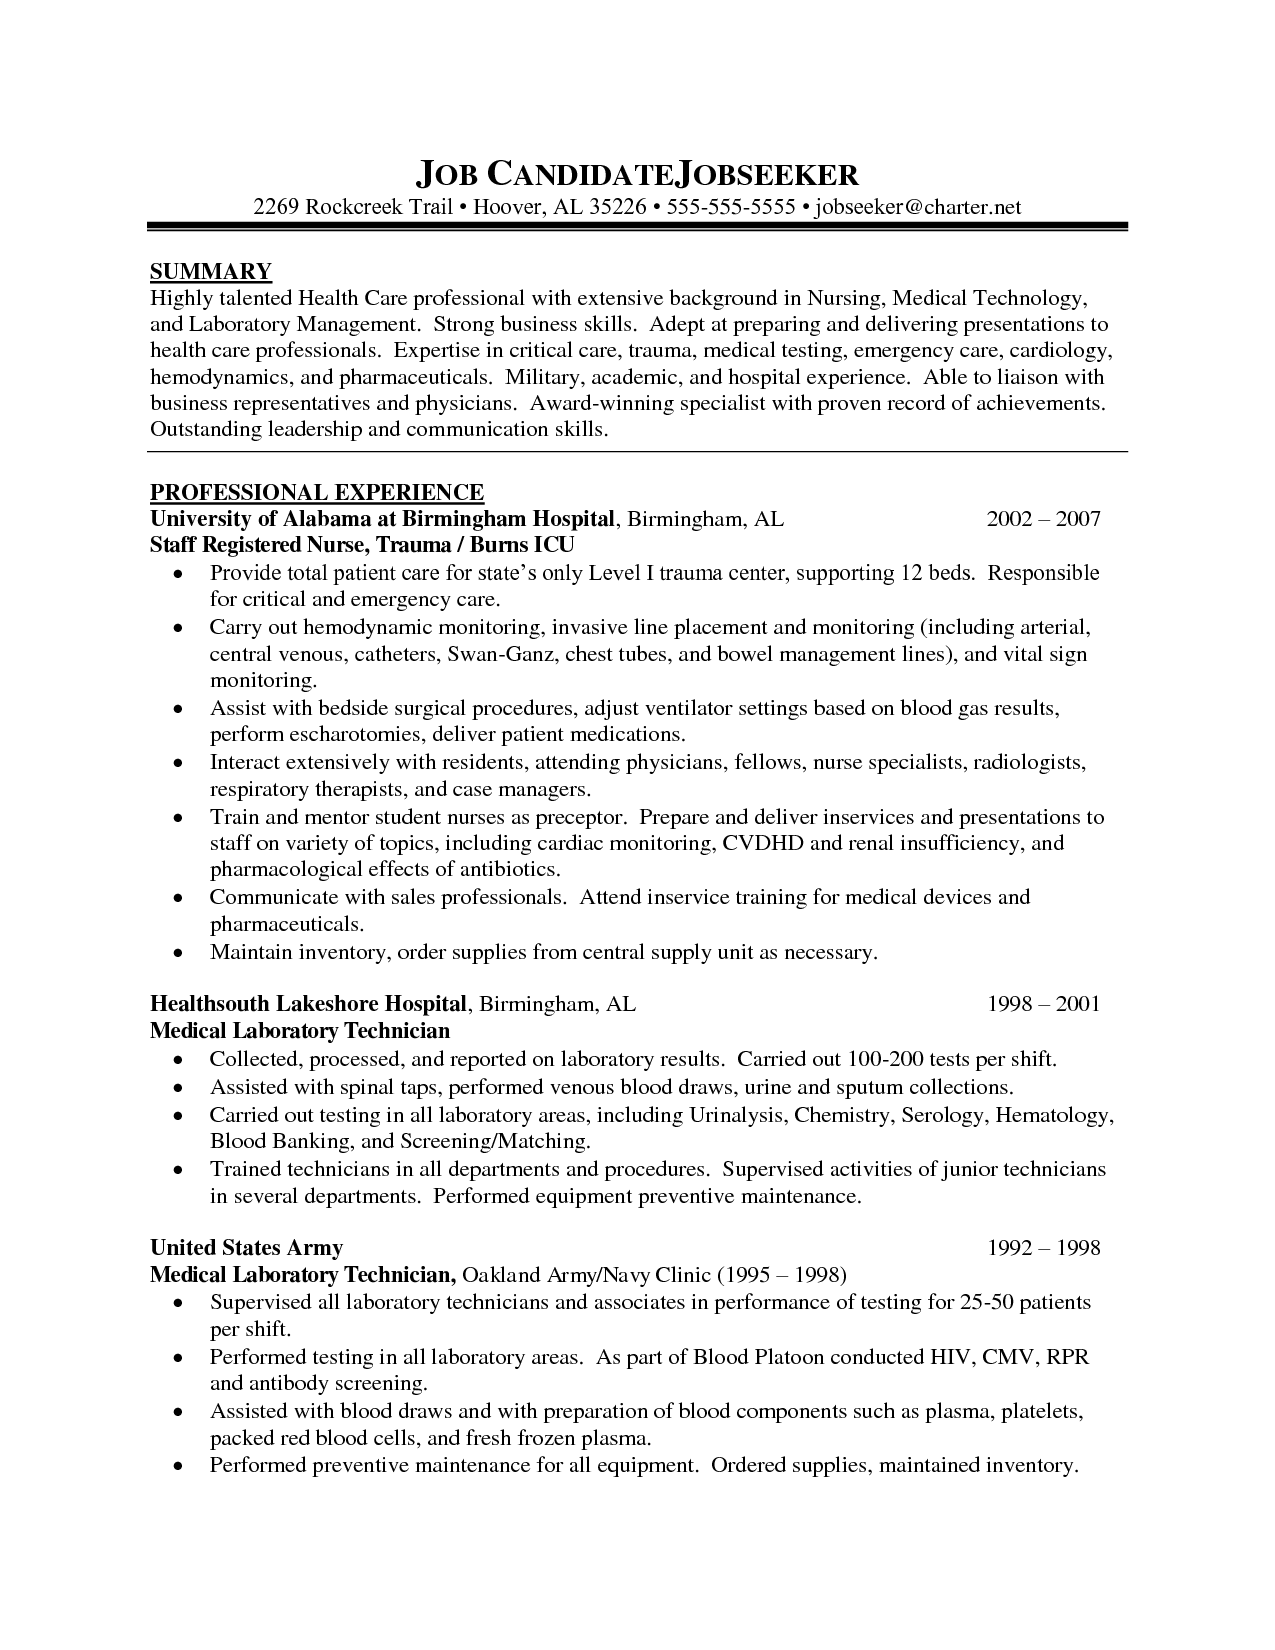 Nursing Student Resume Template Oncology Nurse Resume Objective  Httpwwwresumecareer